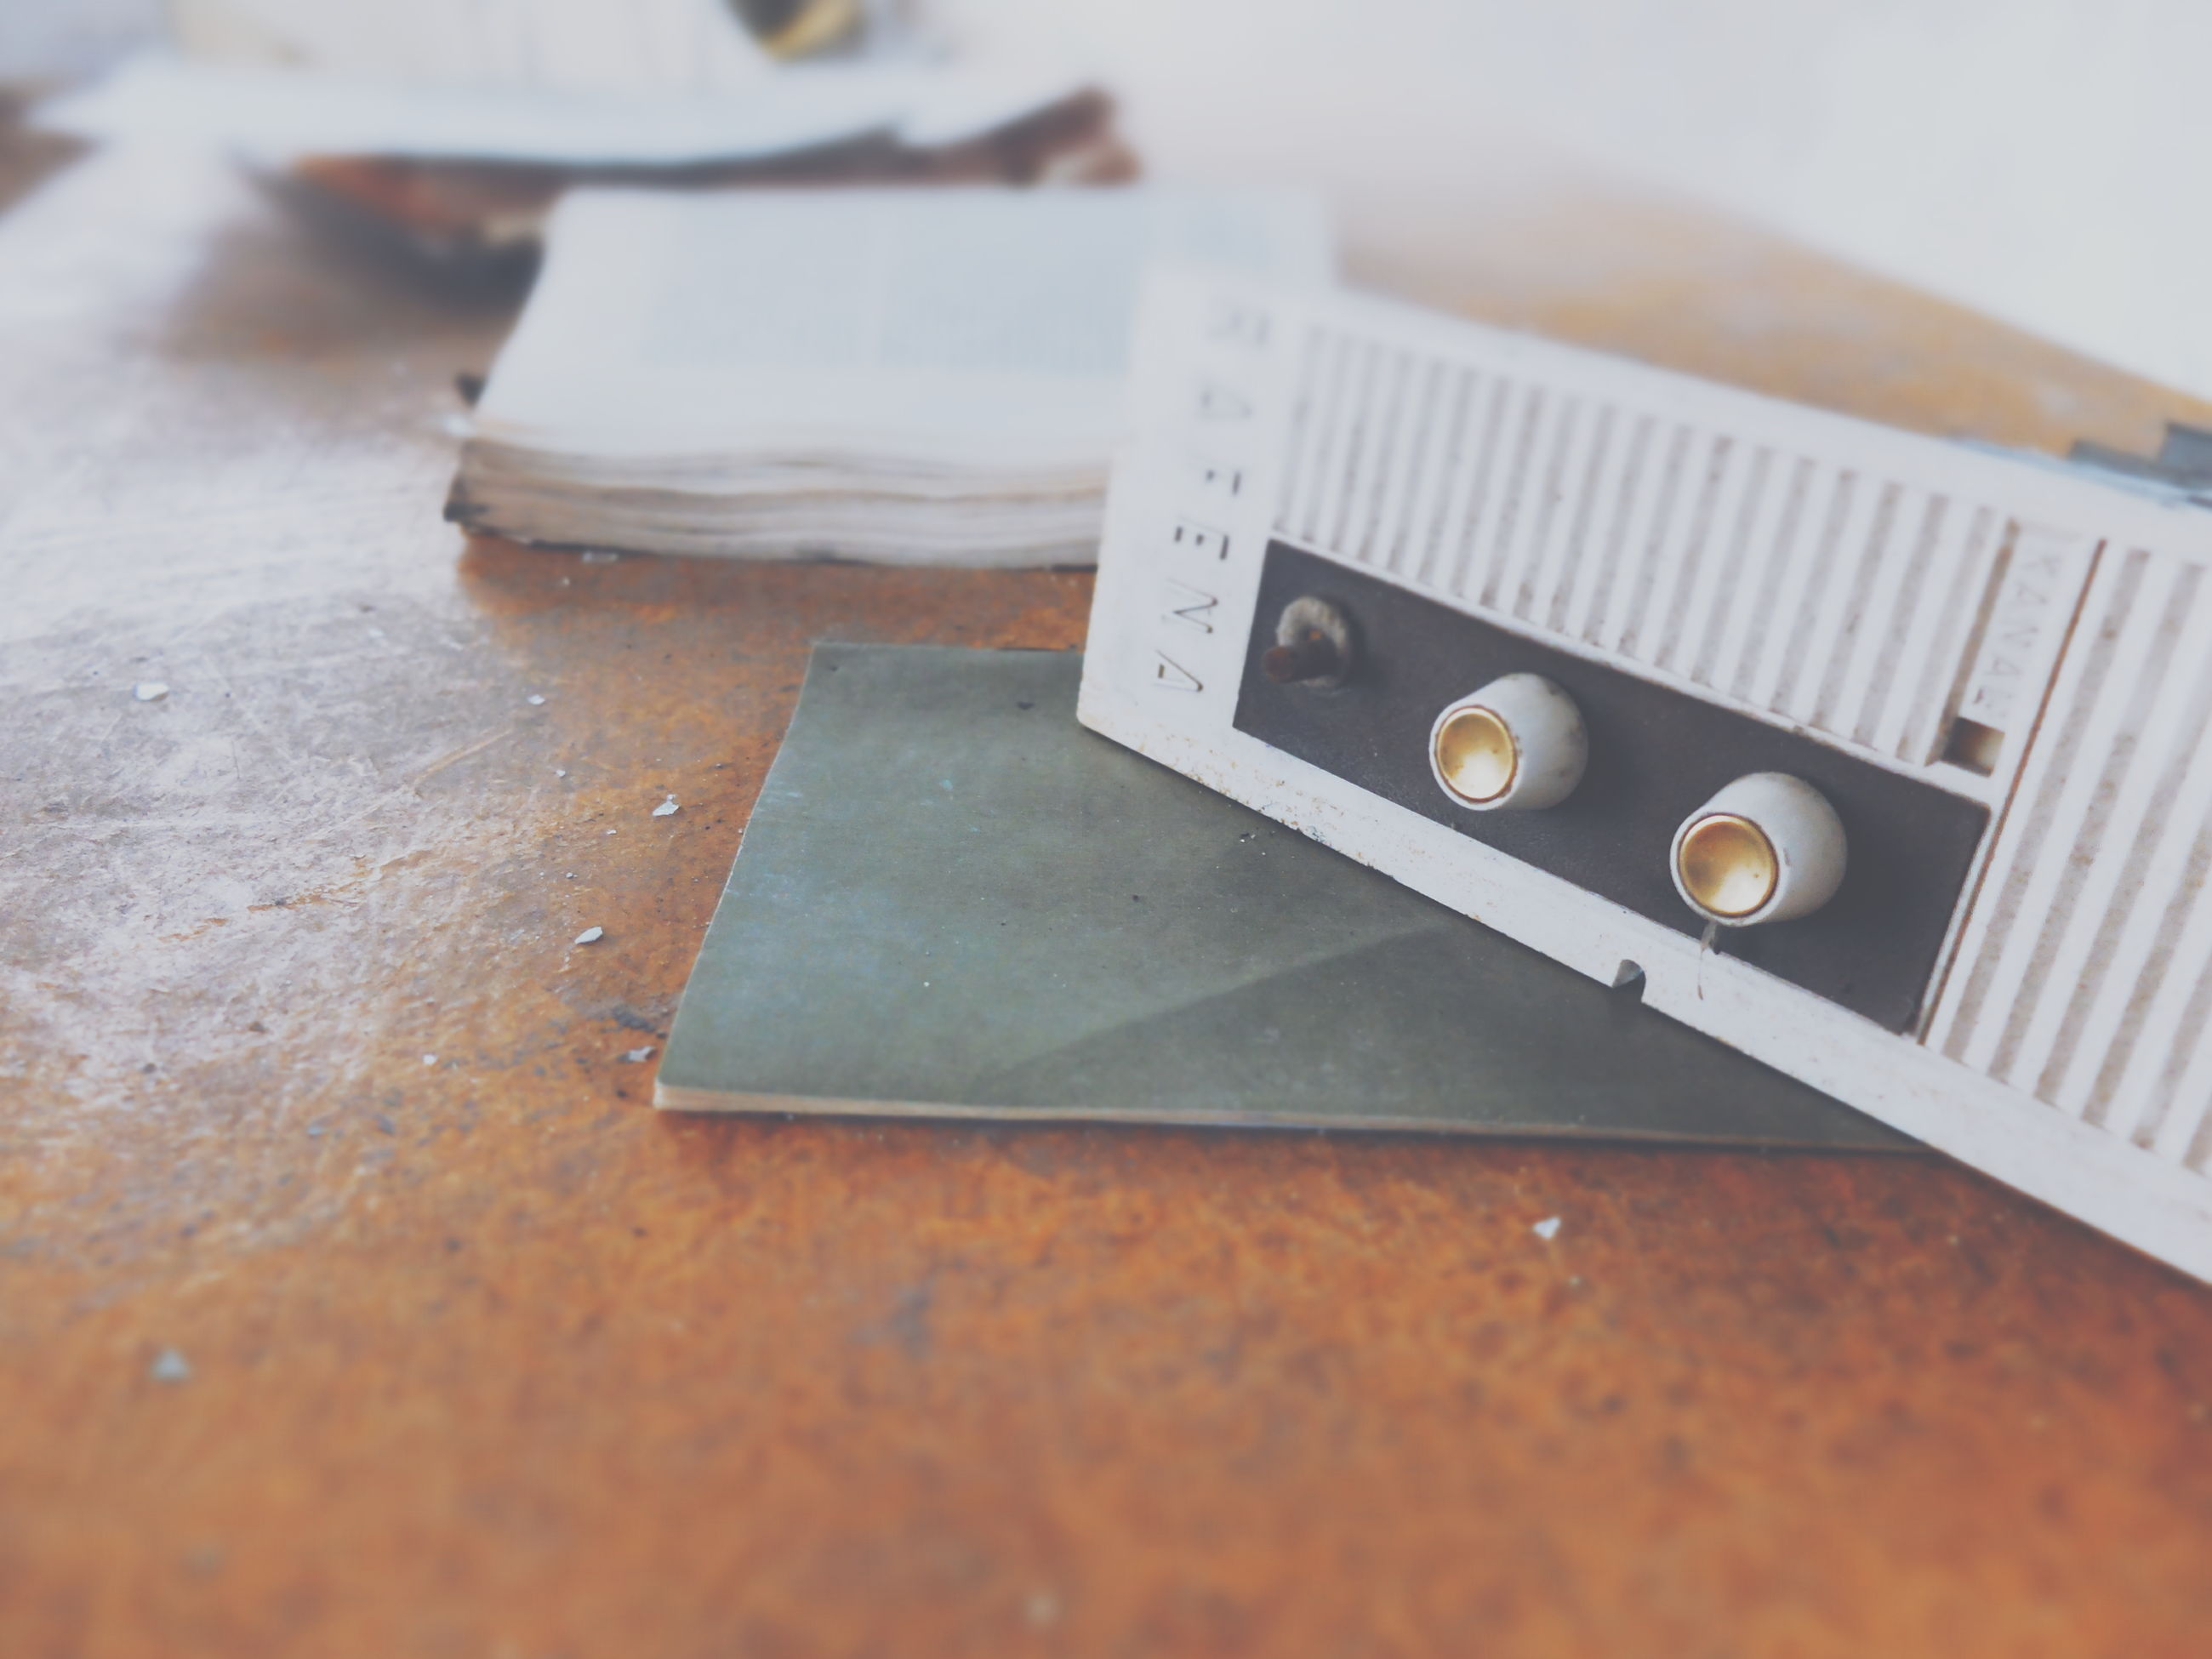 close-up, indoors, still life, selective focus, table, high angle view, metal, wood - material, no people, focus on foreground, communication, old, metallic, day, technology, equipment, retro styled, single object, old-fashioned, number